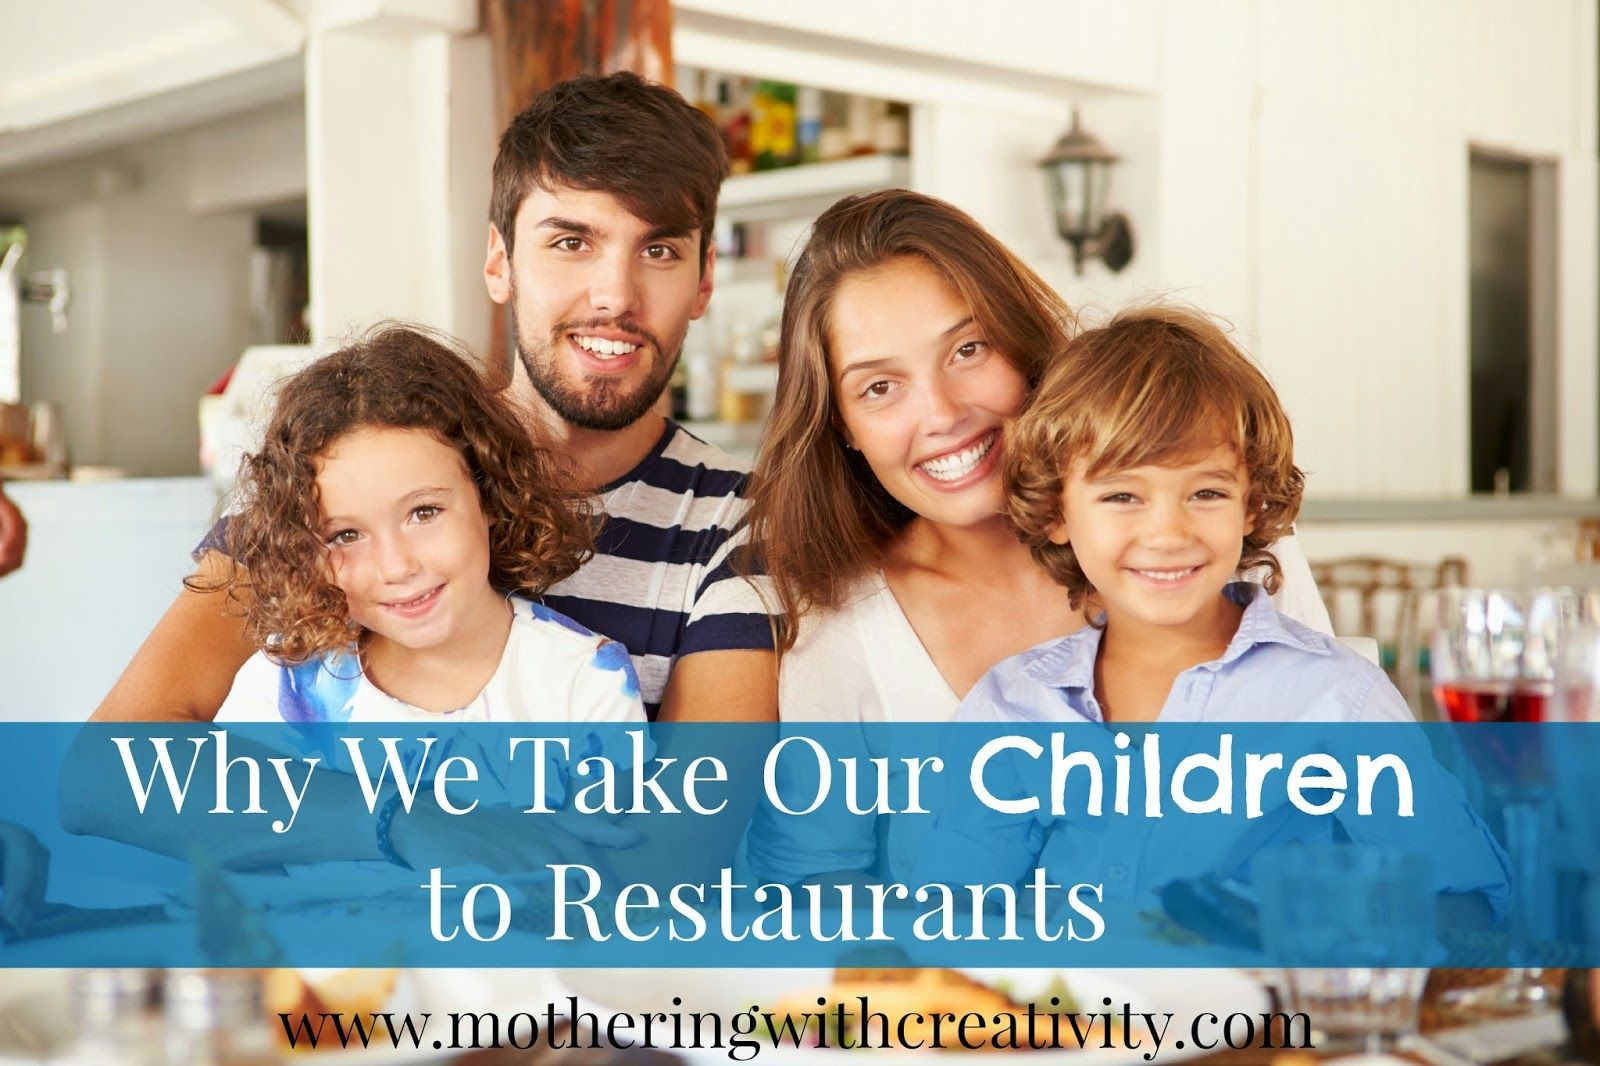 Why We Take Our Children to Restaurants